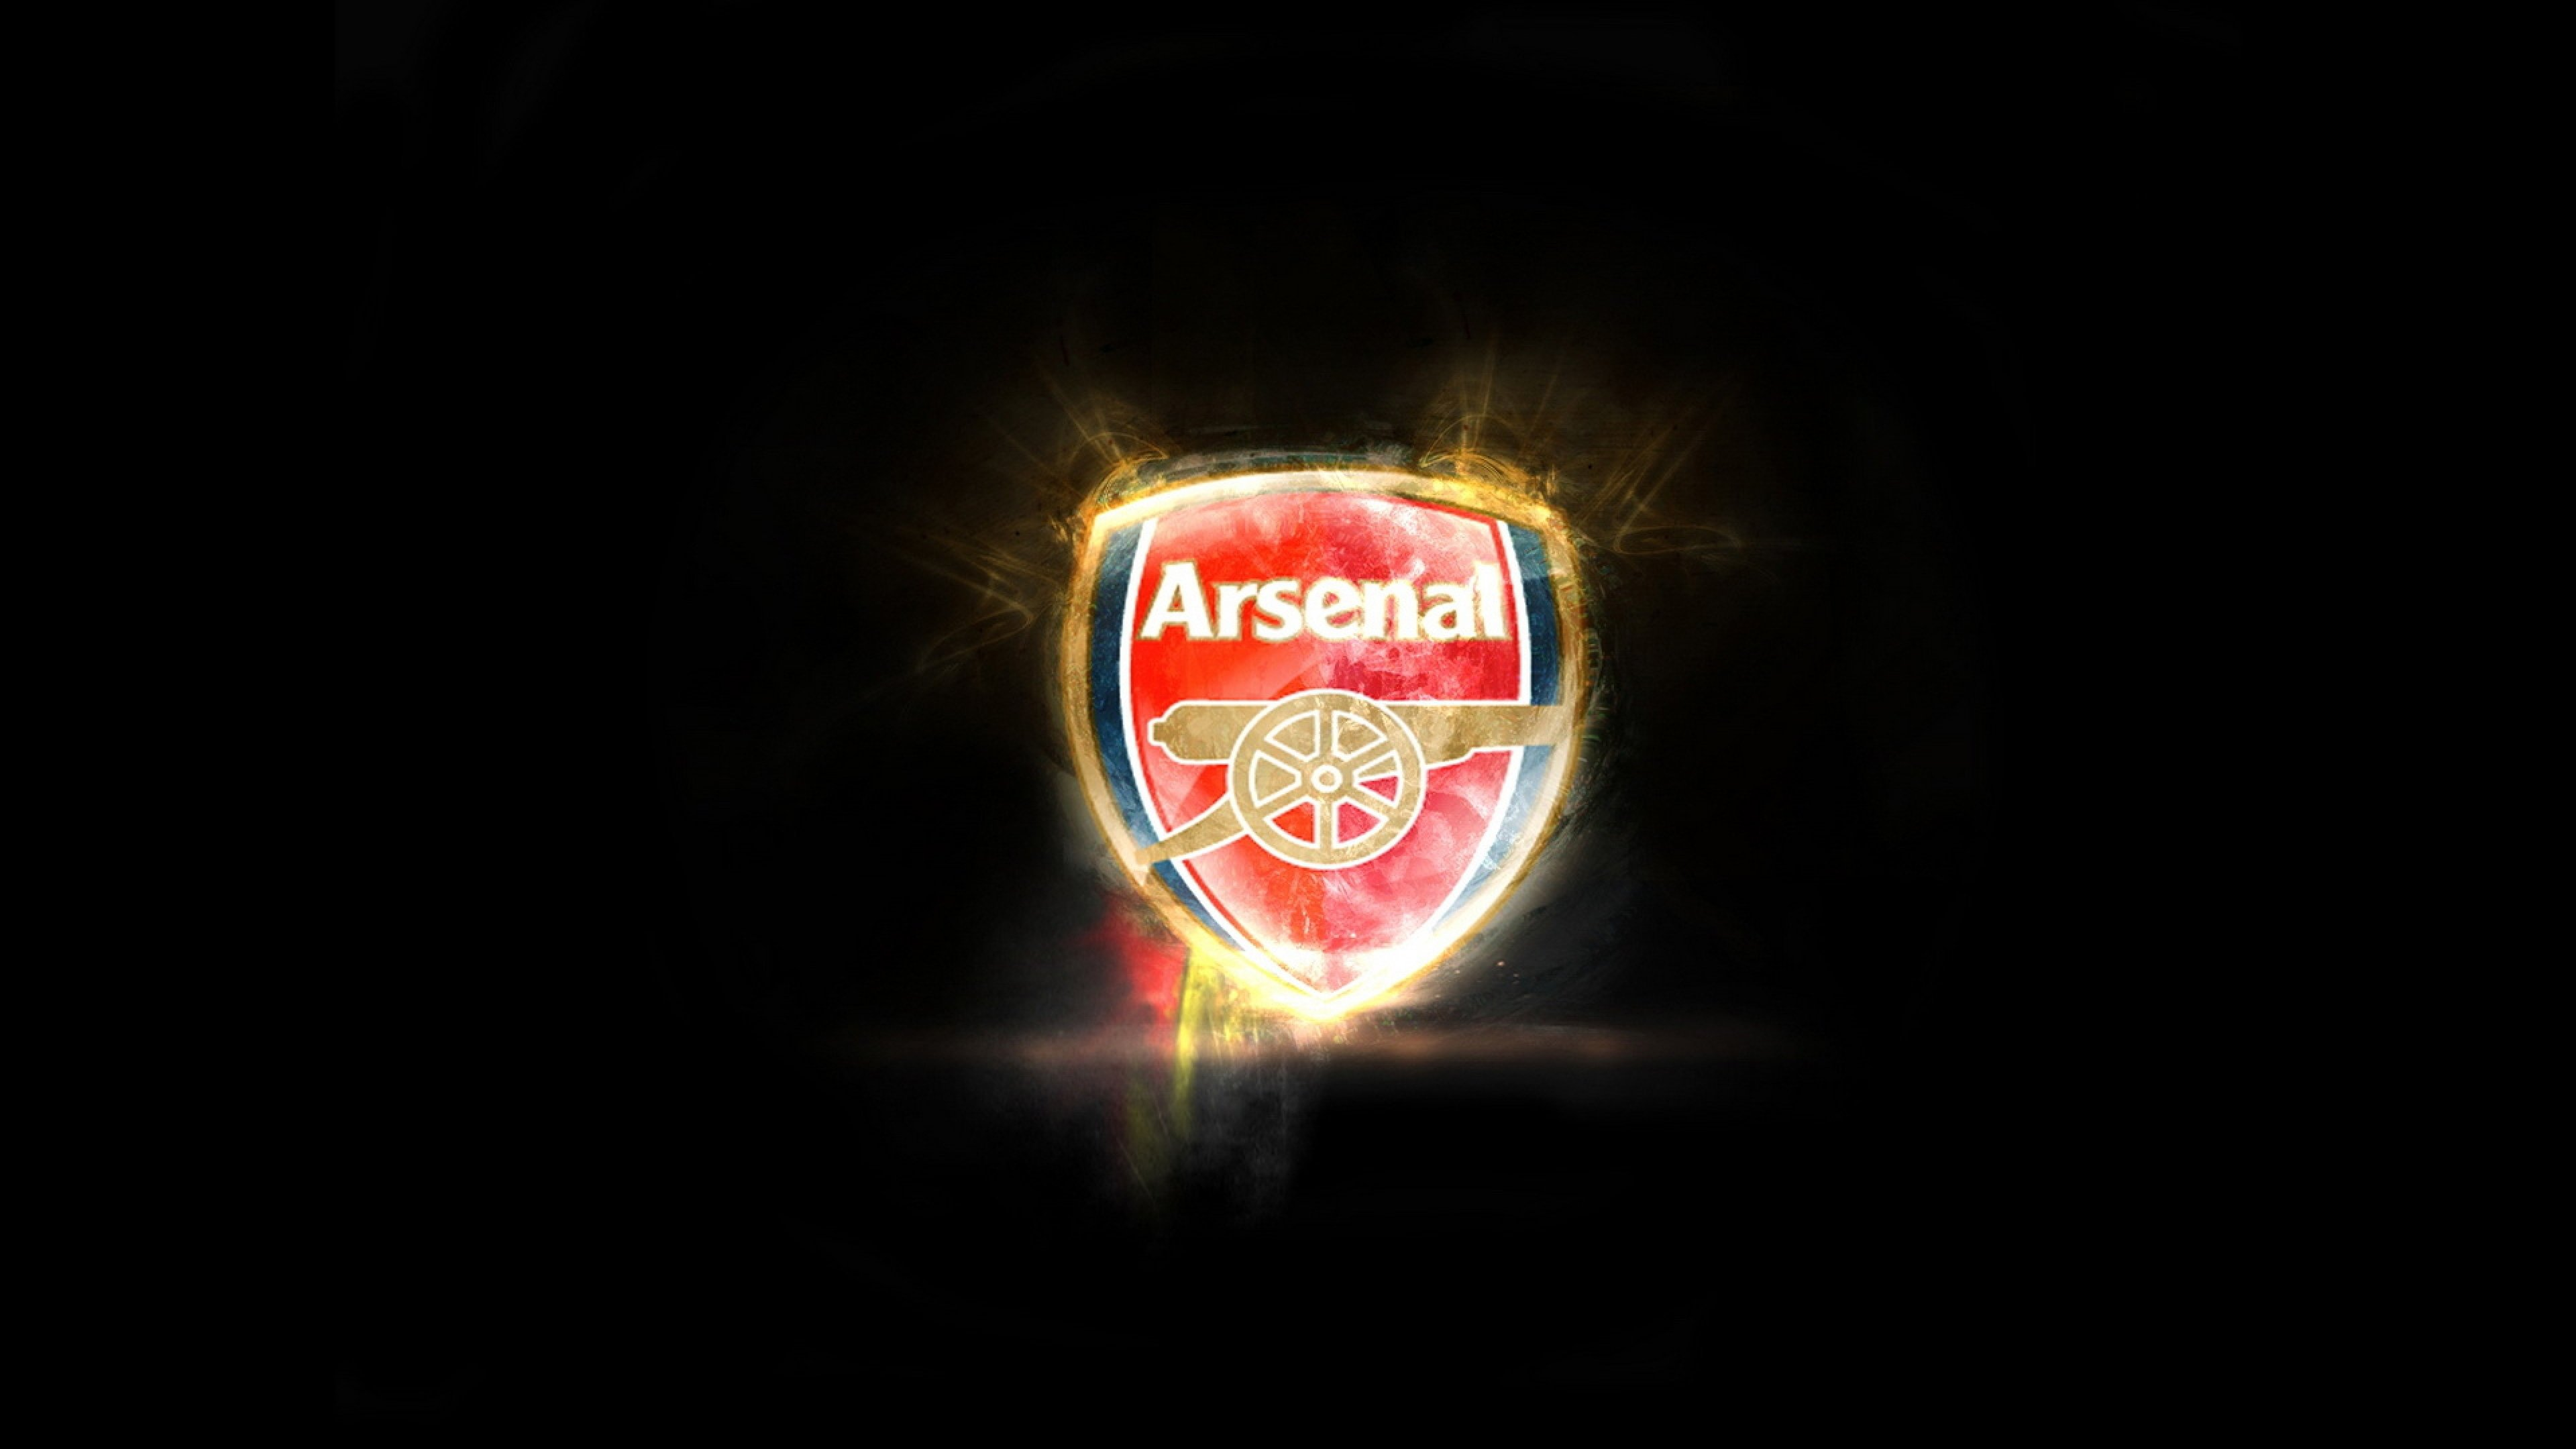 arsenal wallpaper 4k on wallpapersafari